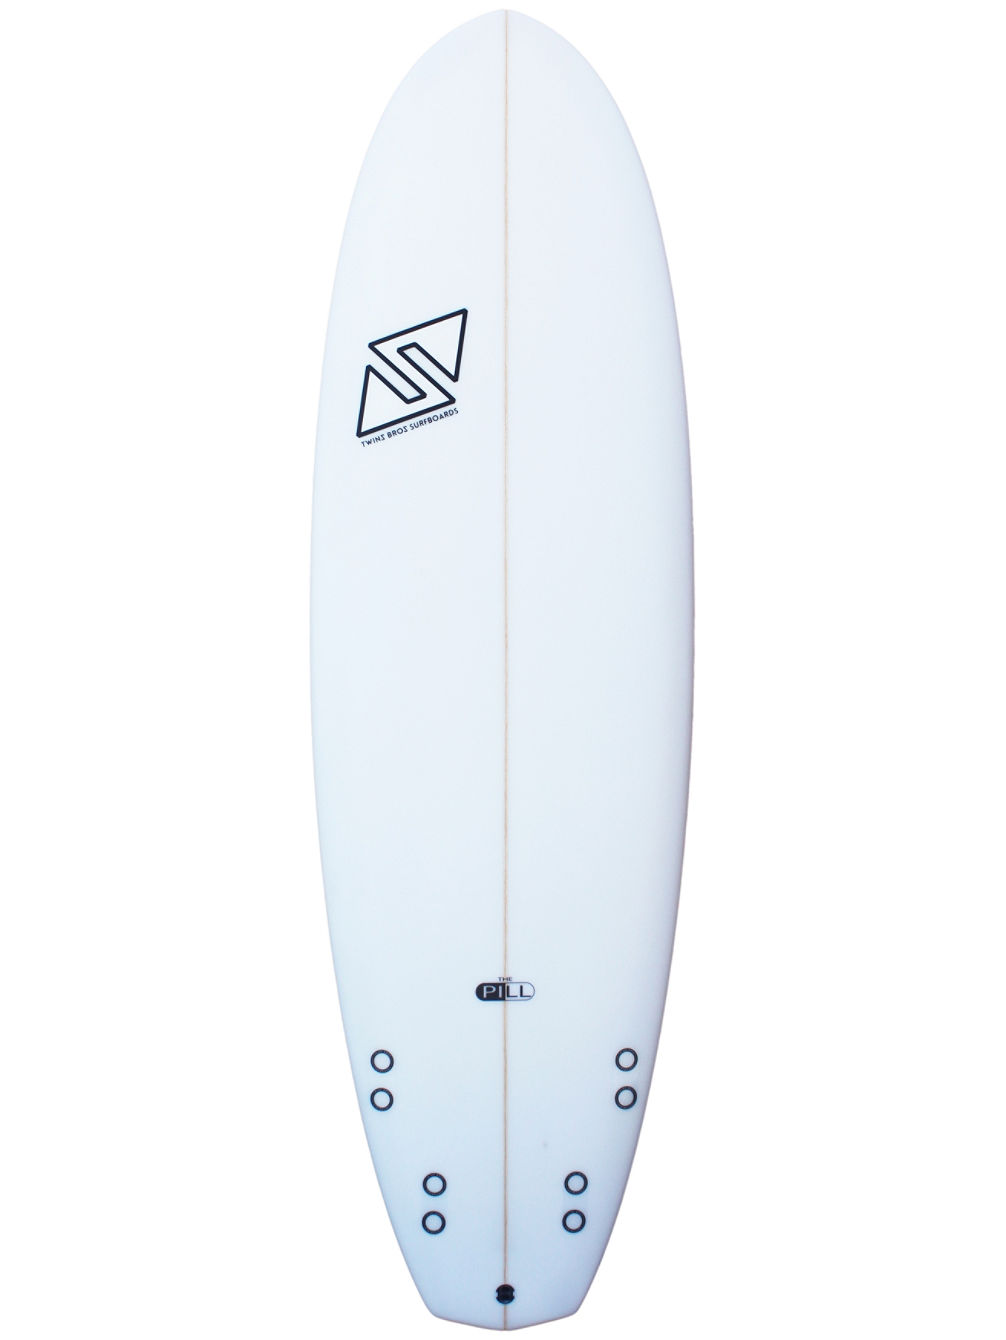 The Pill Future 5'4 Surfboard